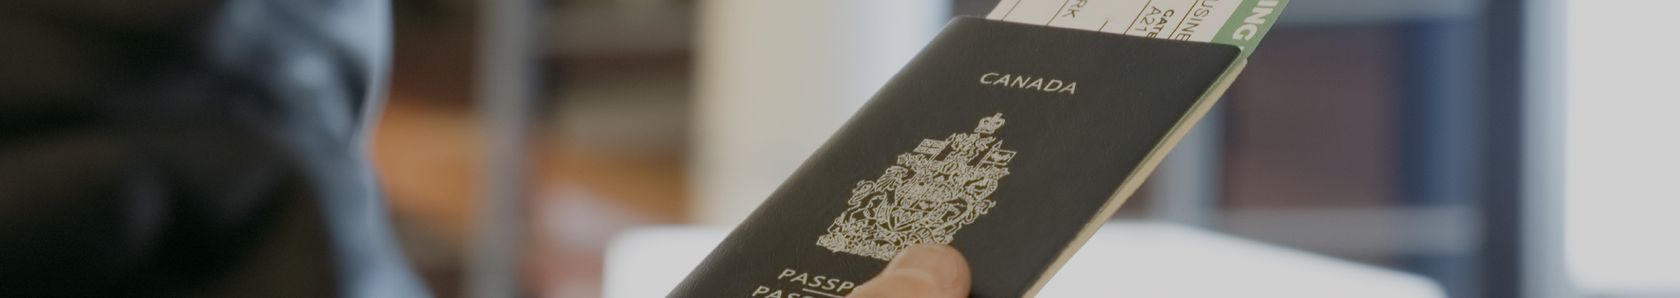 Inadmissible to Canada? Find out everything you need to know about the temporary resident visa and how to apply.